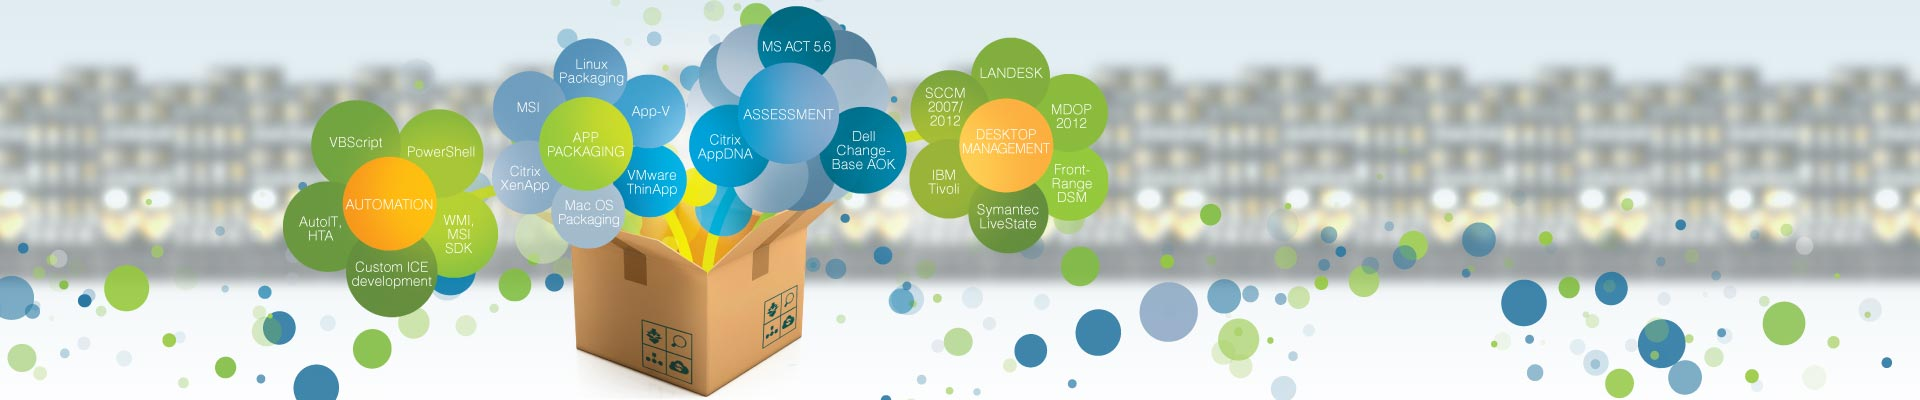 Application Packaging & Virtualization Services